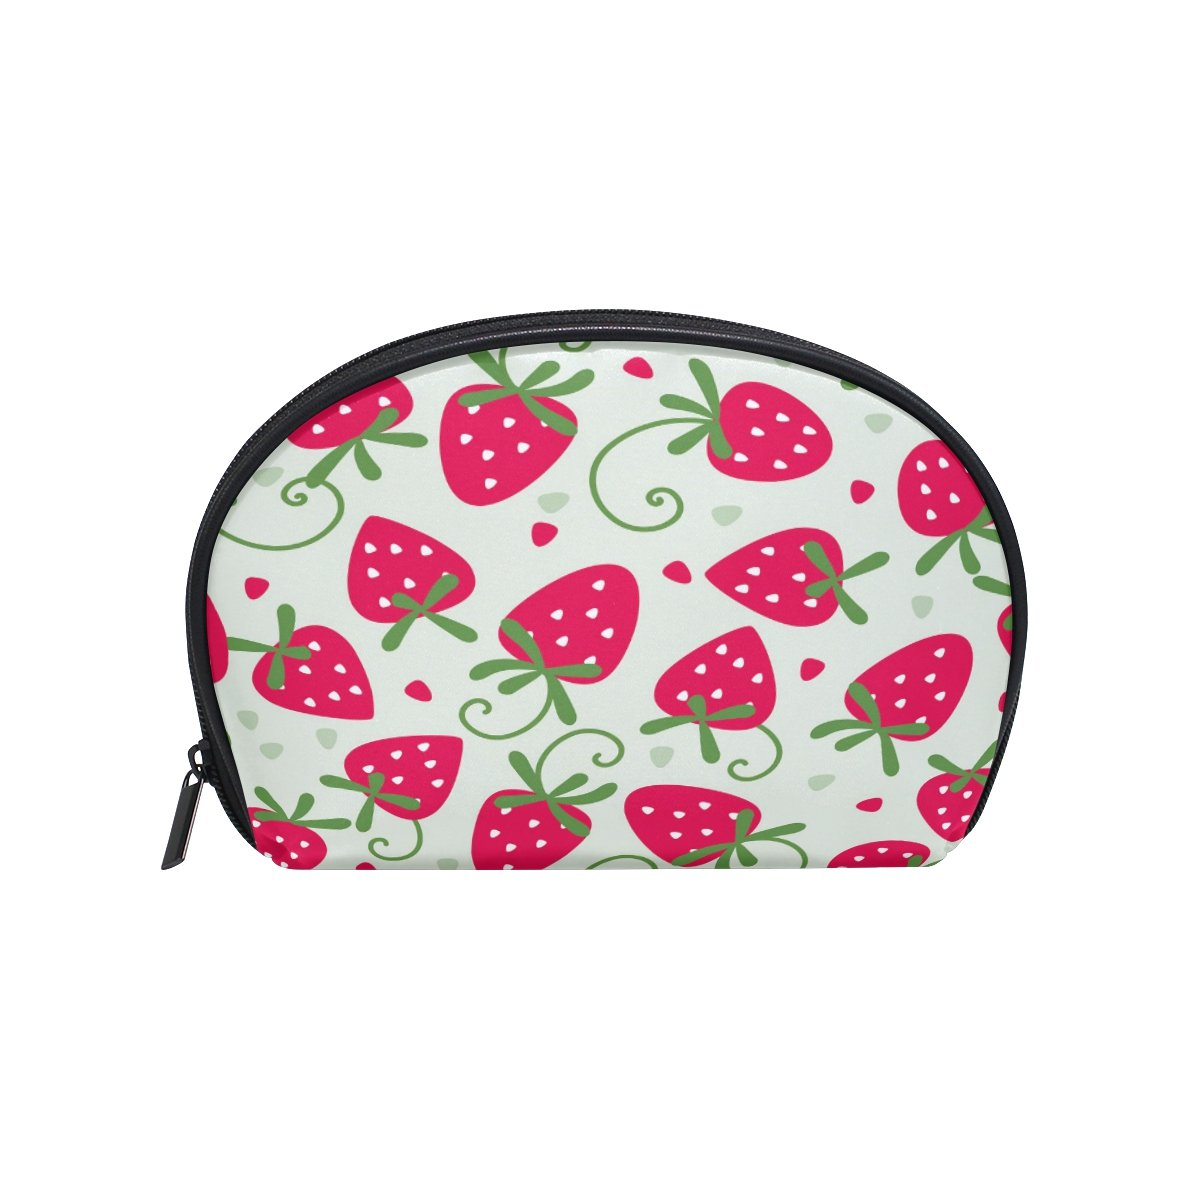 ALAZA Strawberry Half Moon Cosmetic Makeup Toiletry Bag Pouch Travel Handy Purse Organizer Bag for Women Girls